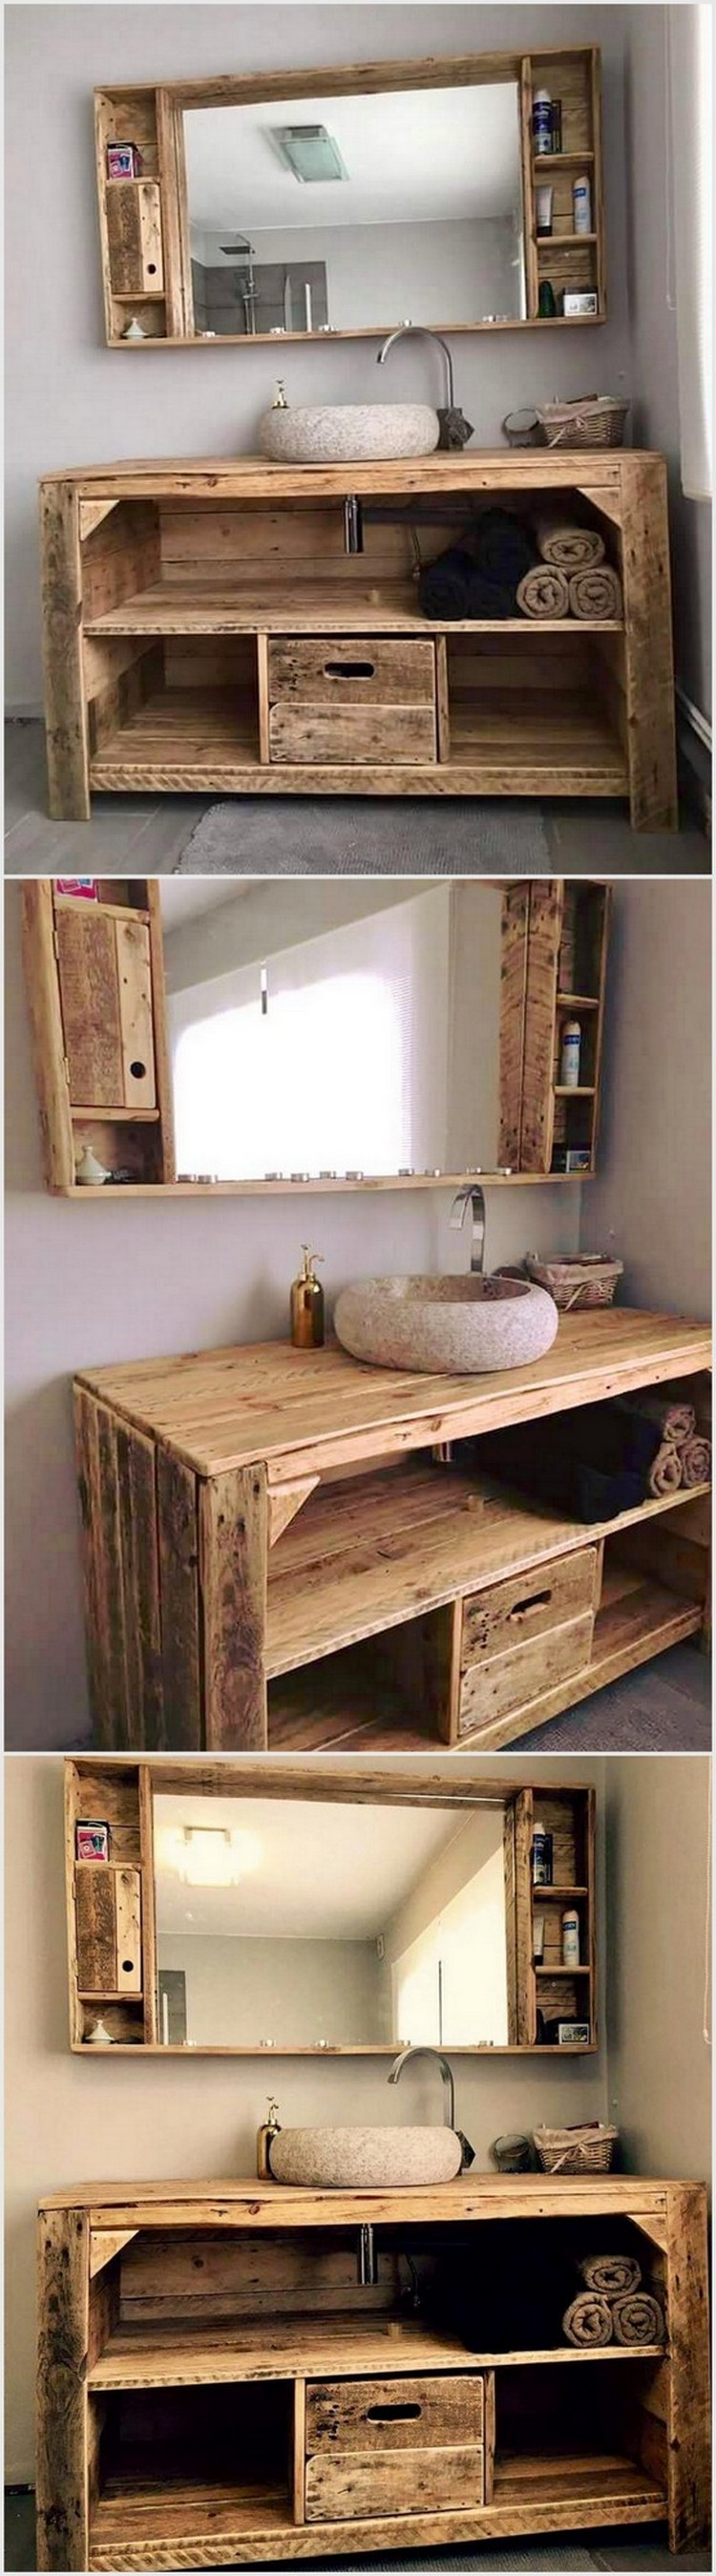 excellent ideas with used wood pallets pallet wood projects. Black Bedroom Furniture Sets. Home Design Ideas